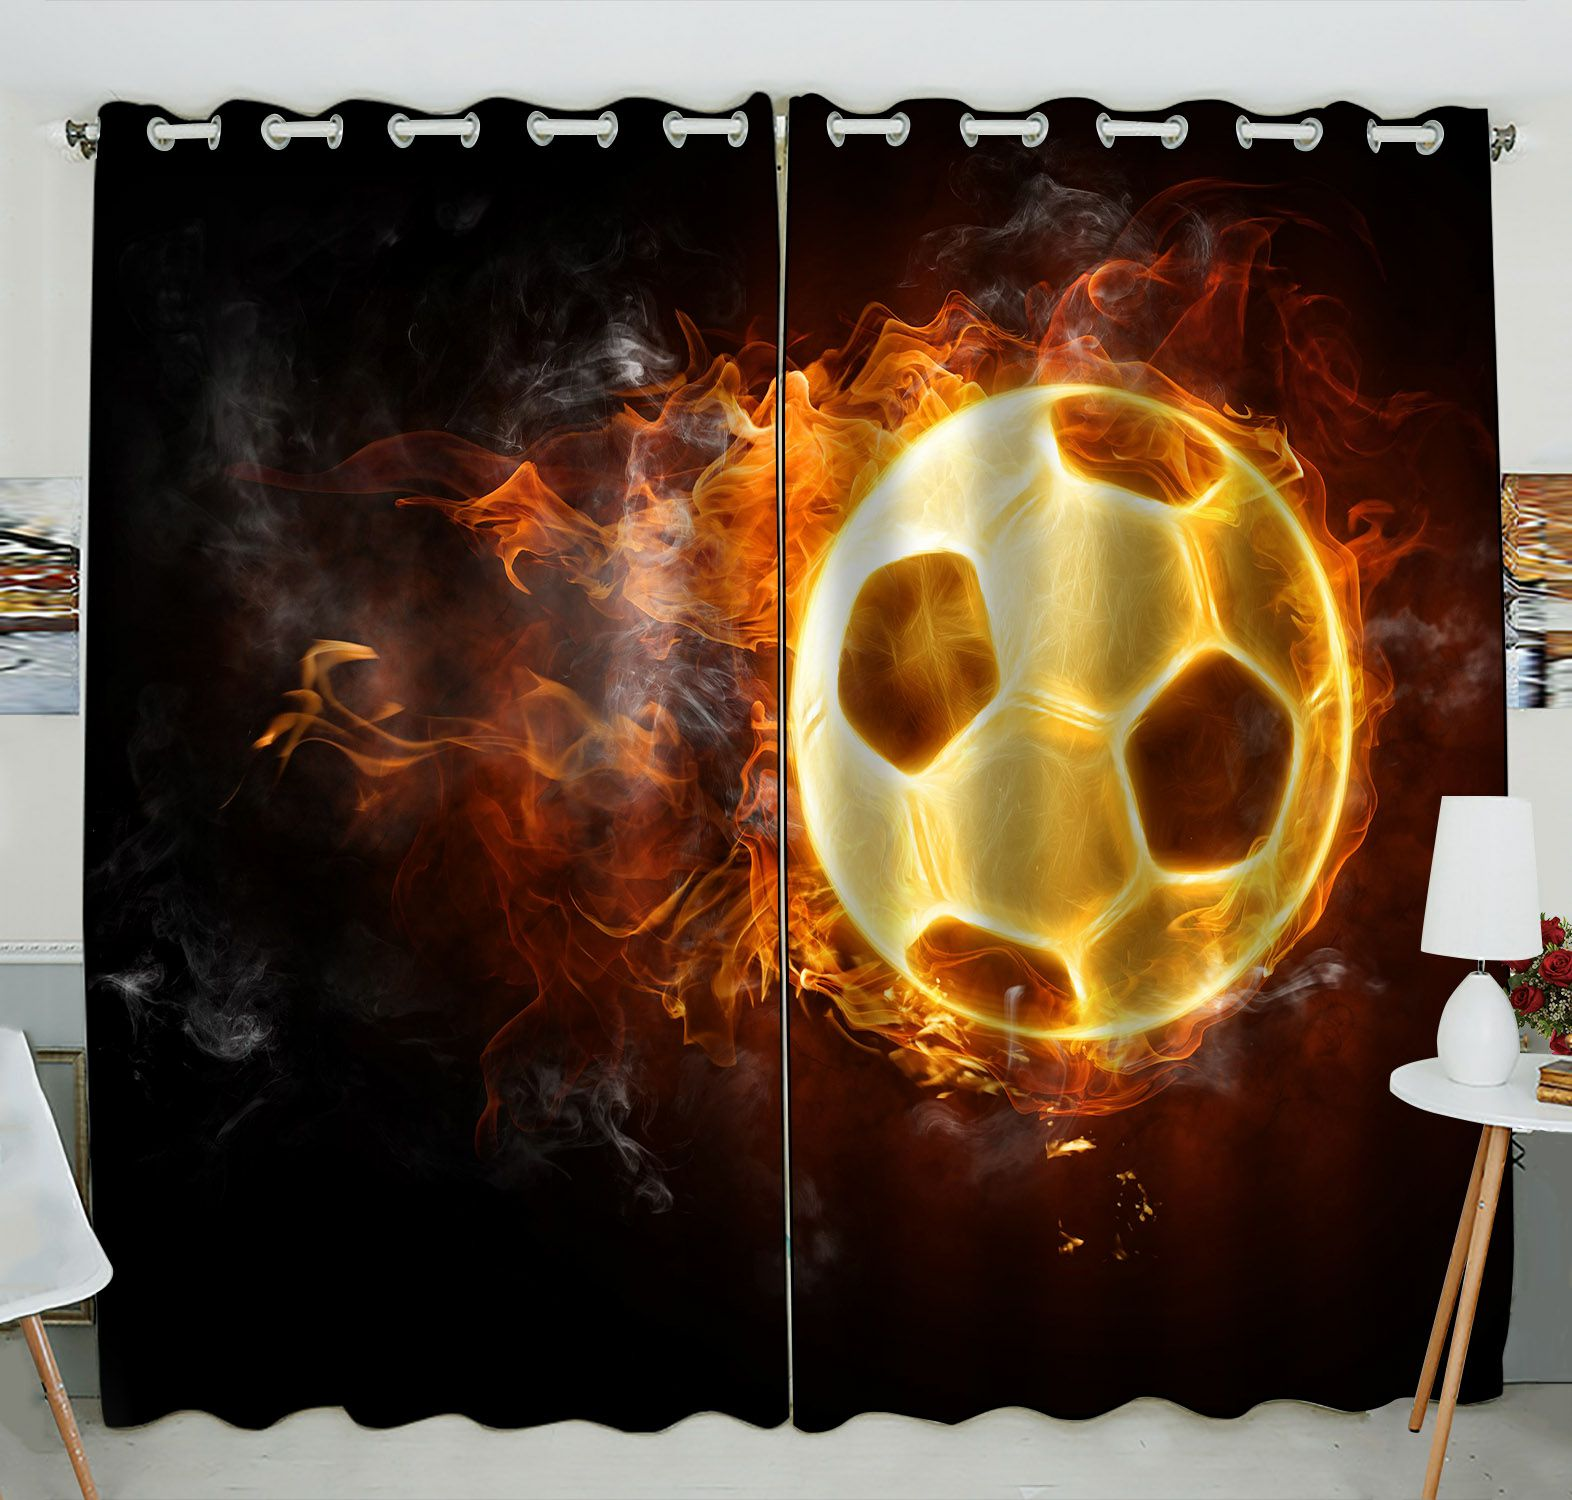 ZKGK Soccer Ball Art On Fire Window Curtain Drapery/Panels/Treatment For Living Room Bedroom Kids Rooms 52x84 inches Two Panel